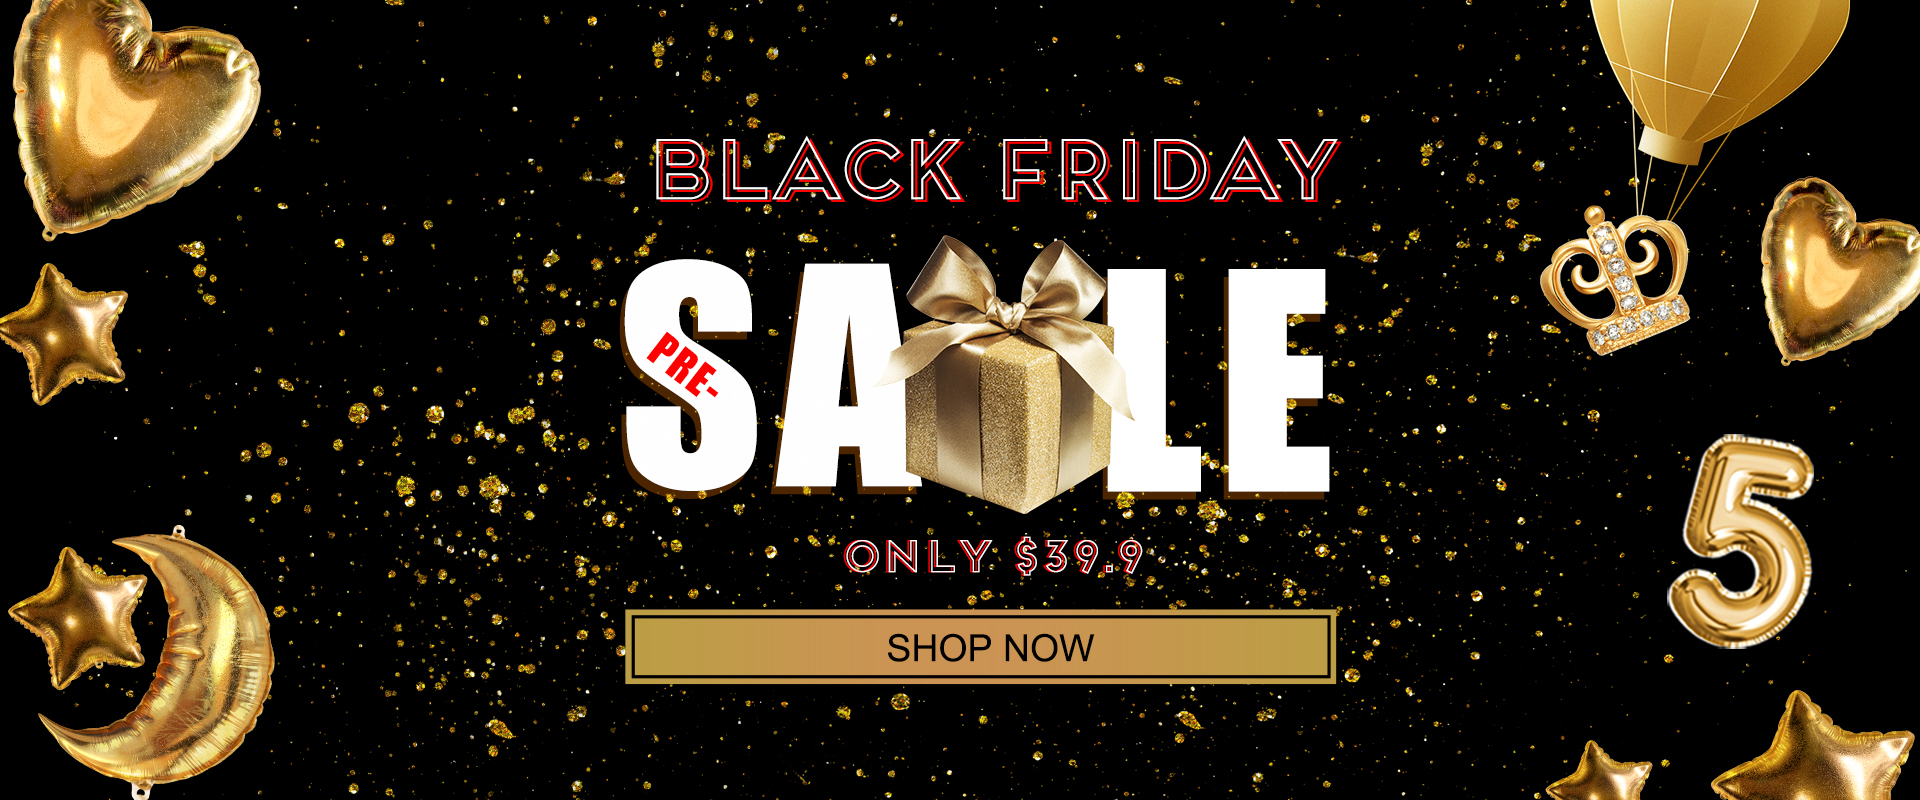 black friday pre-sale